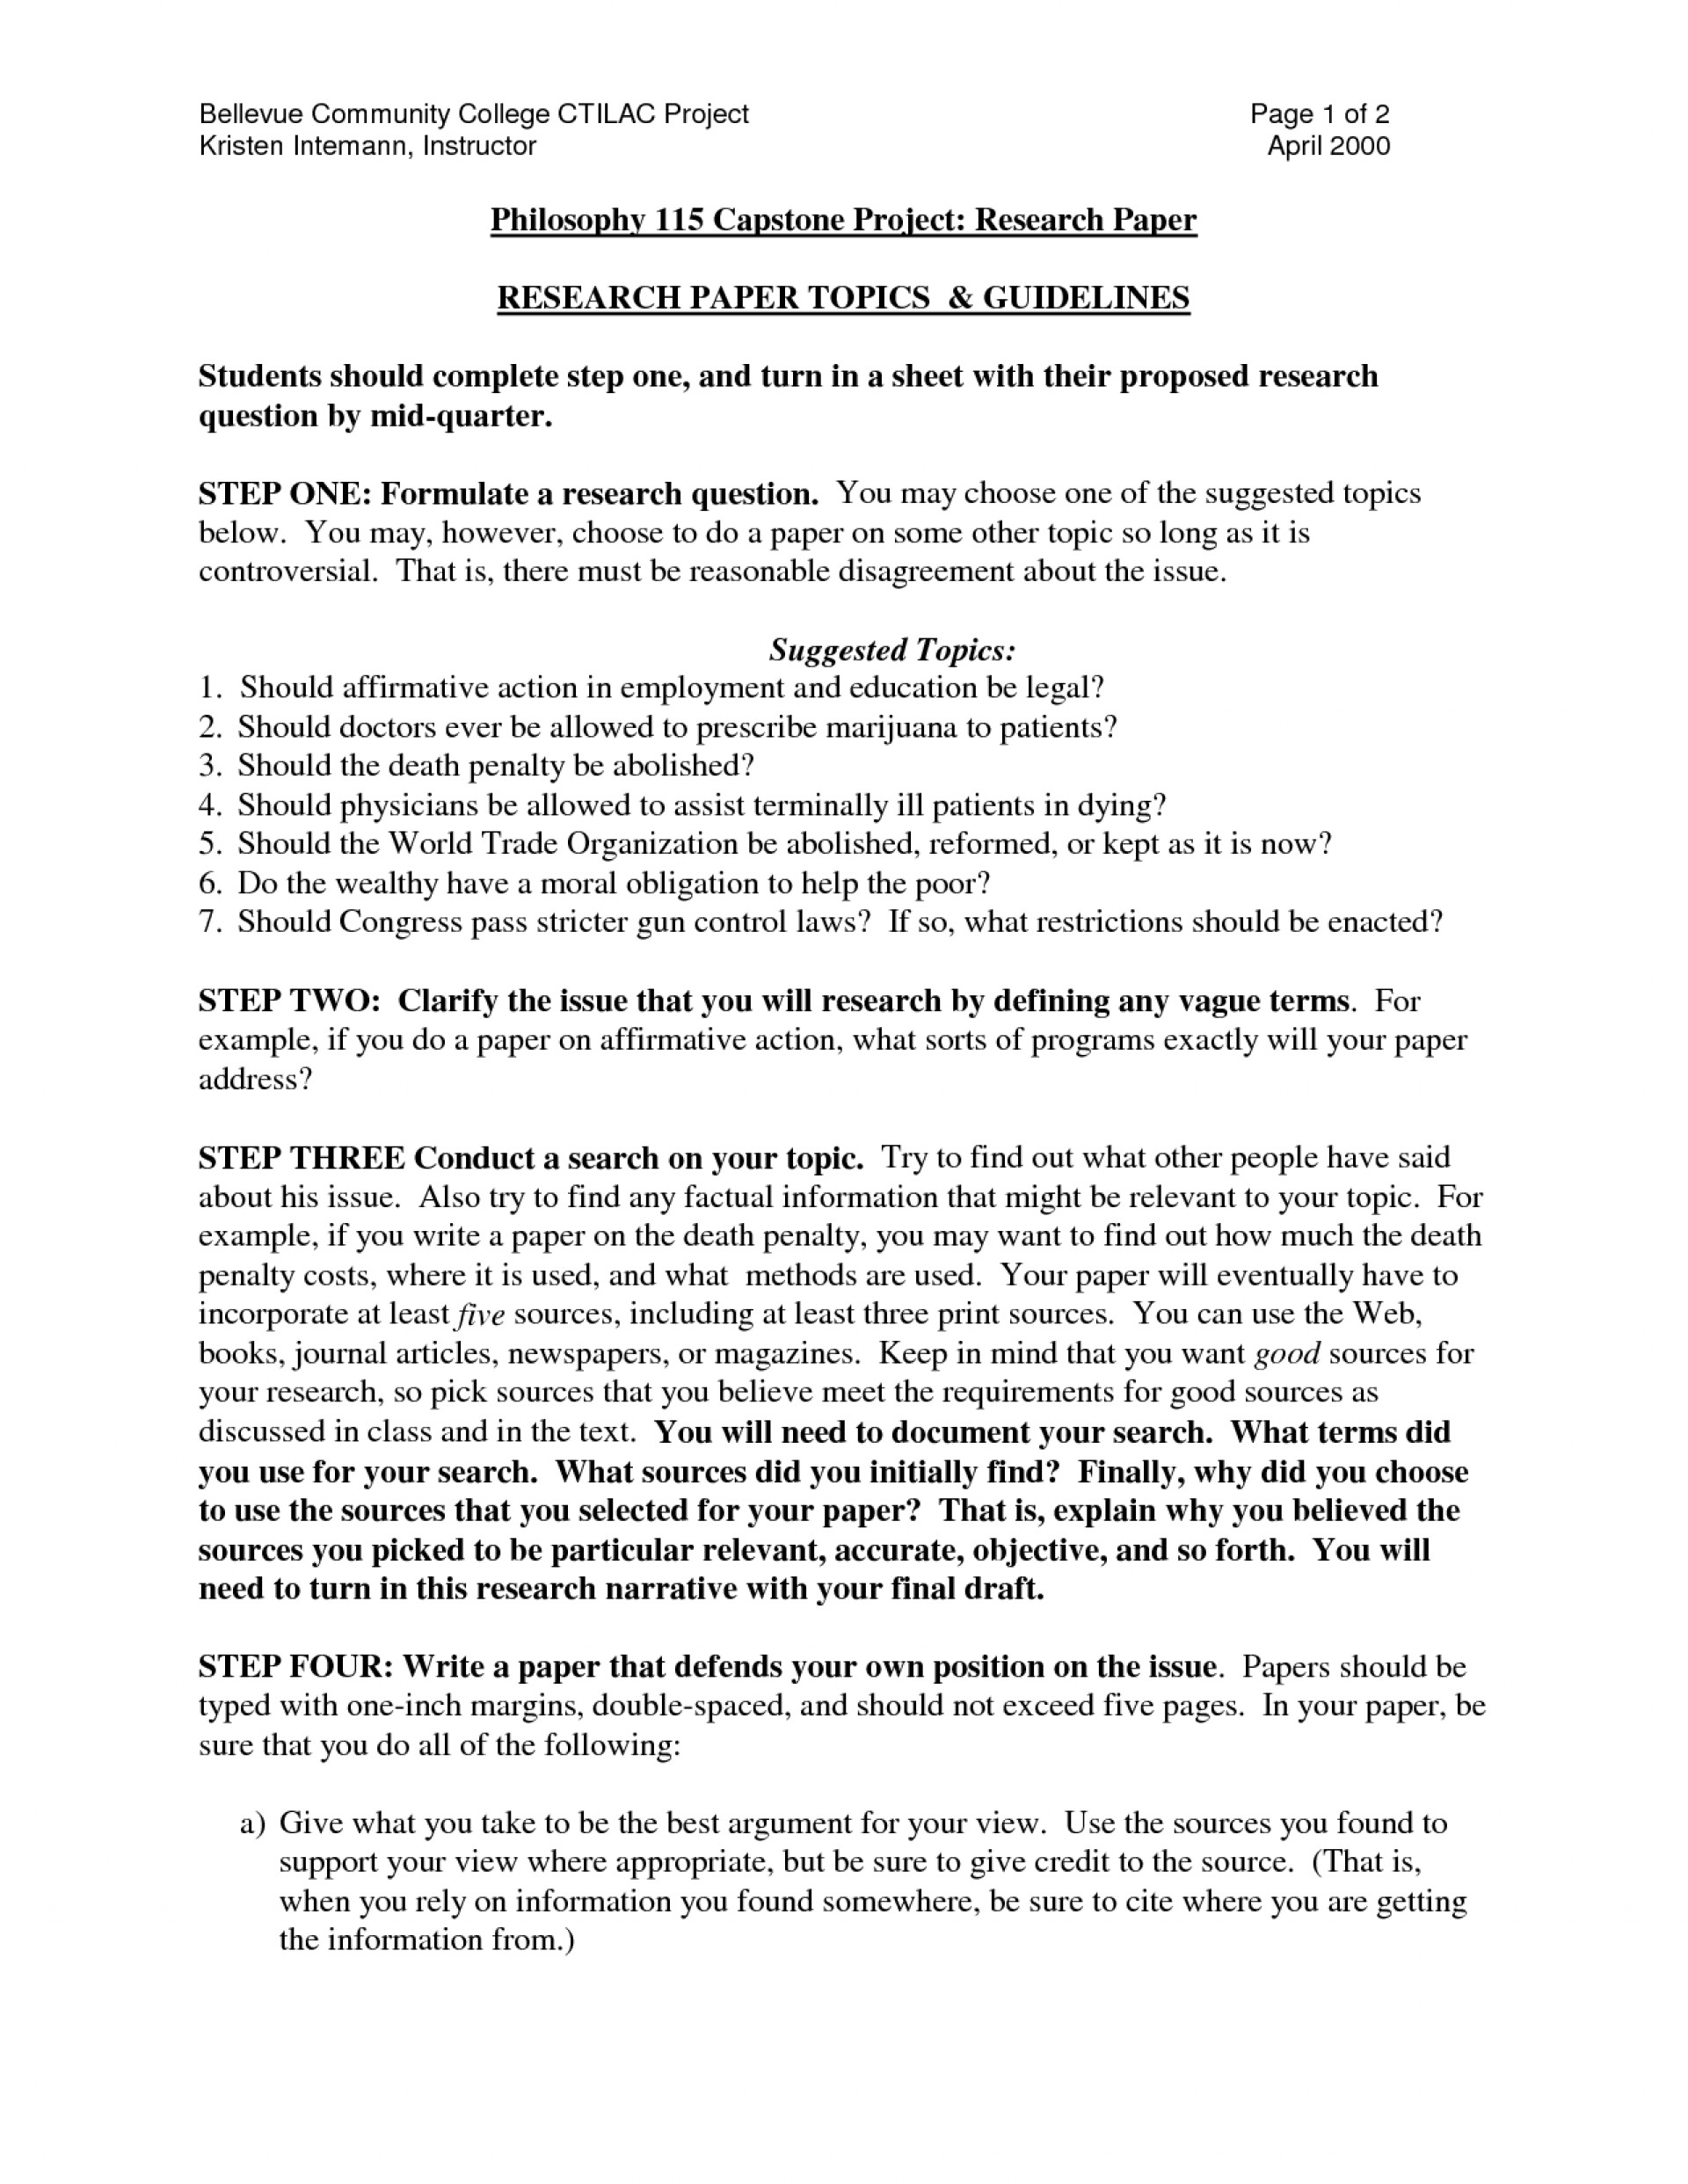 English Essay Topics For Students  Samples Of Essay Writing In English also Proposal Essay Topic  How To Write Research Paper Introduction Paragraph  Essay On Health Promotion